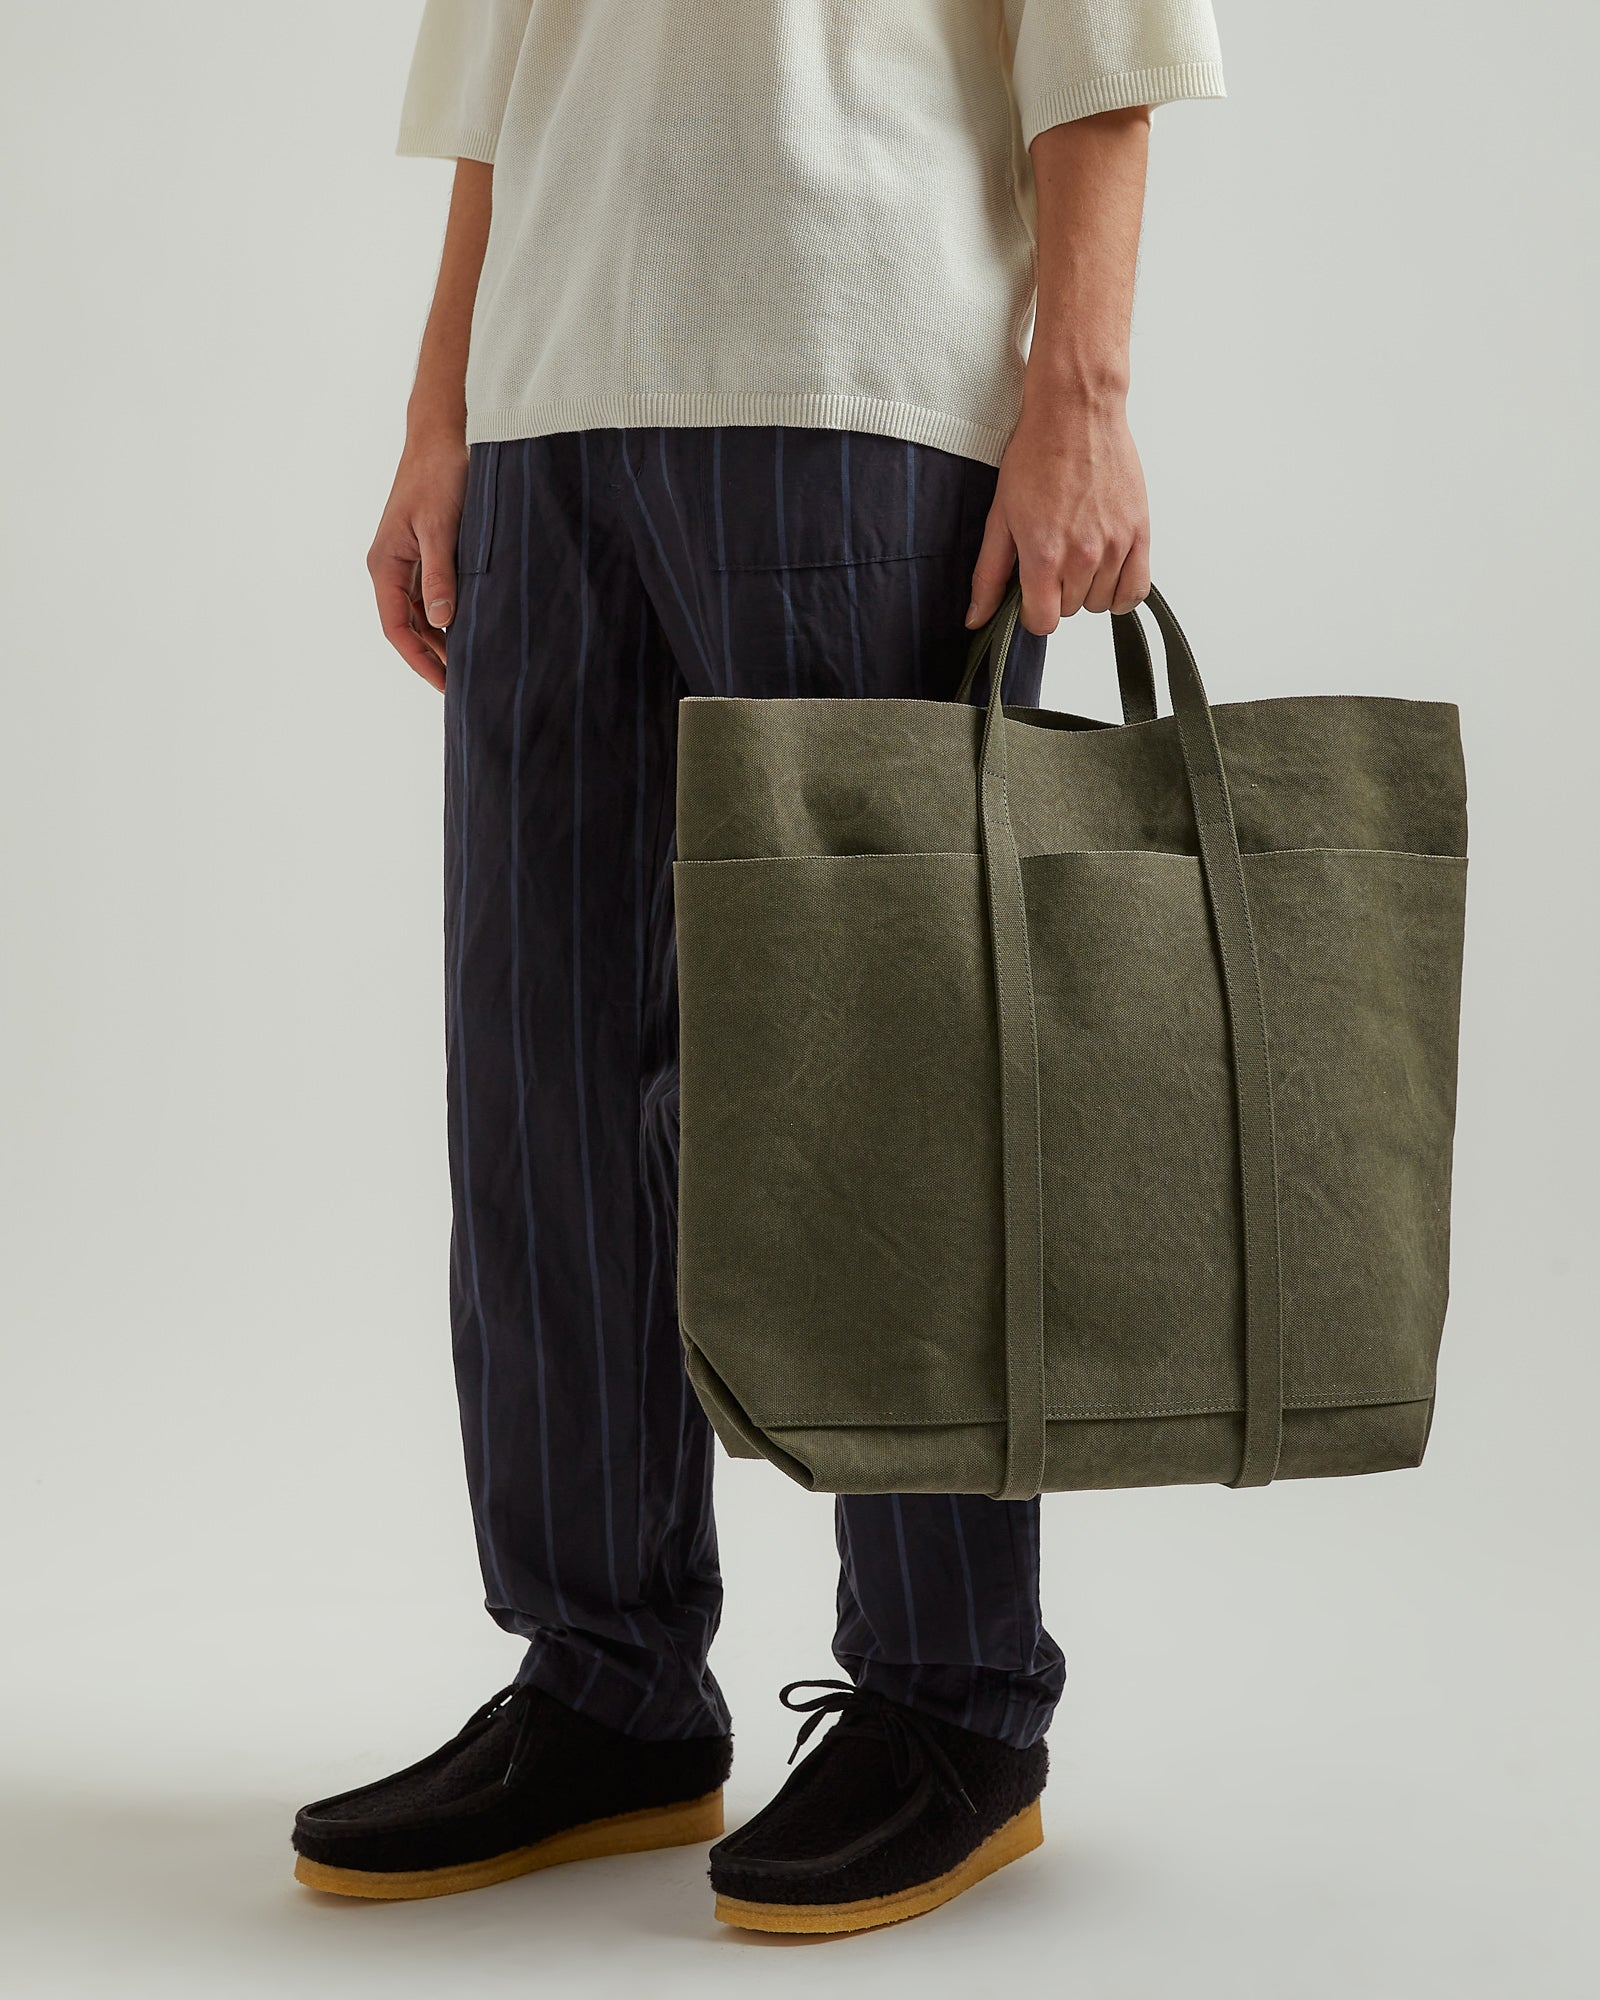 Washed Canvas 6P Tote Bag in Olive (T)